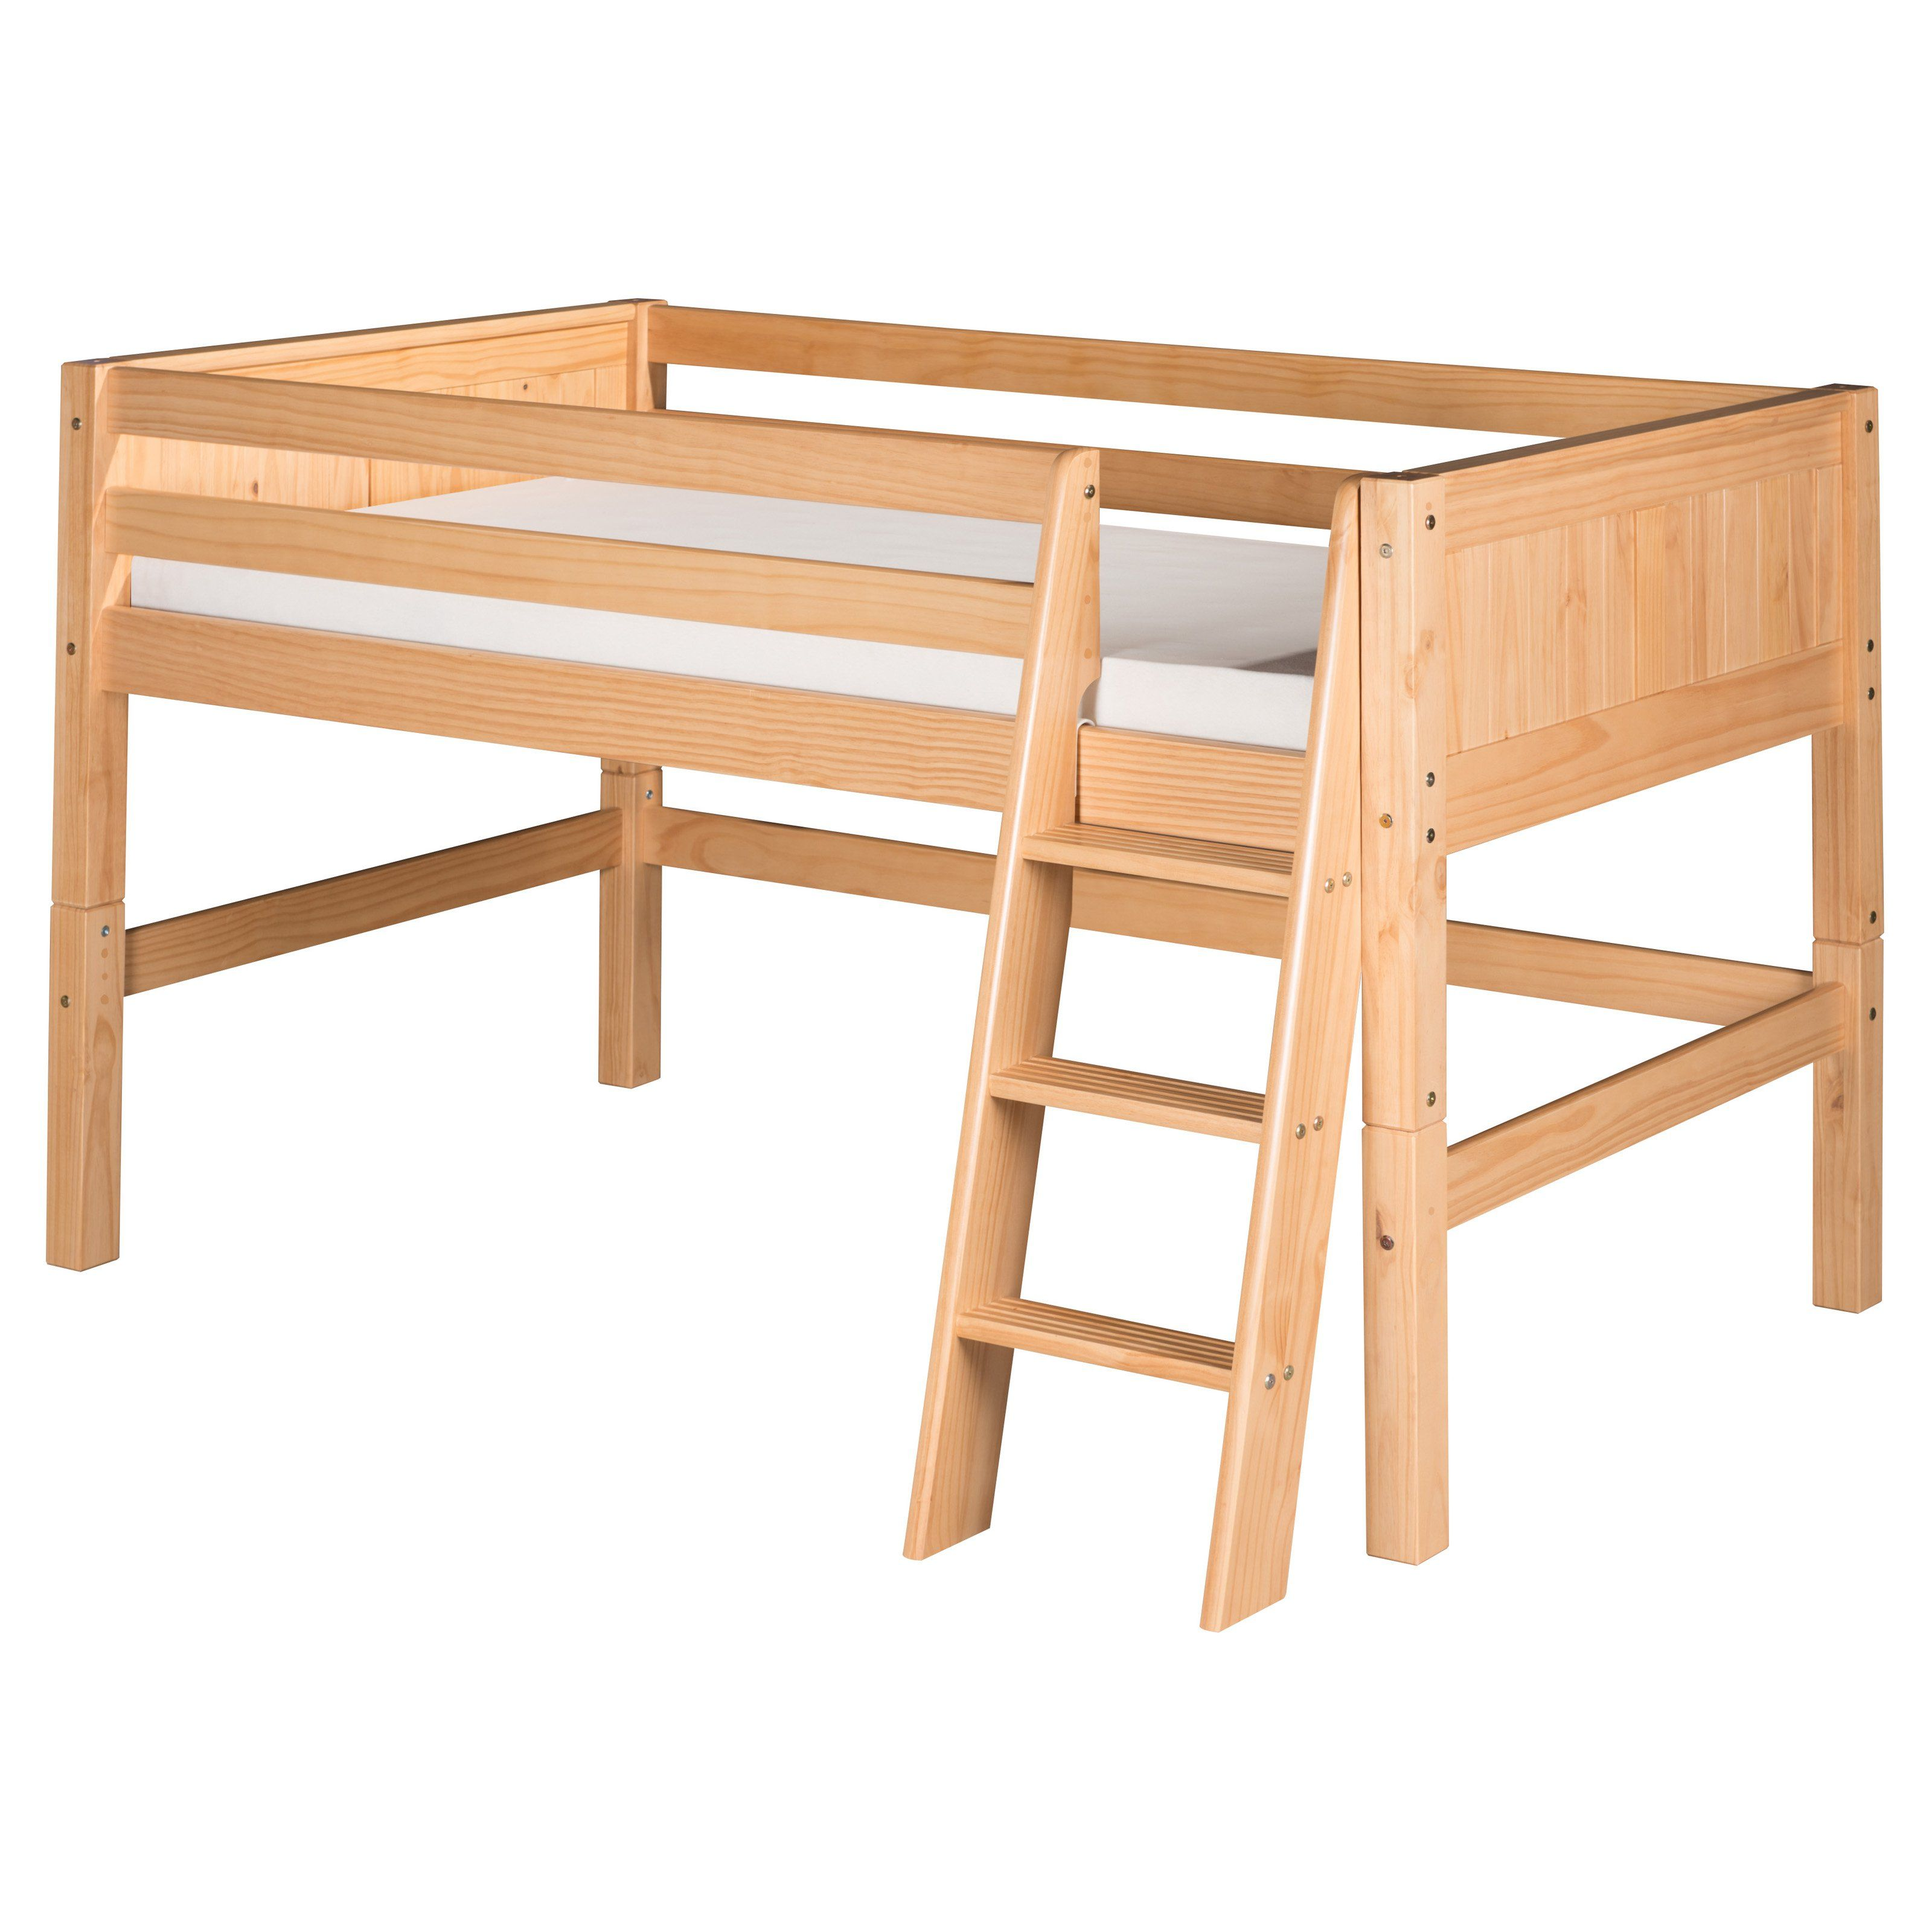 Camaflexi Panel Headboard Low Loft Bed Make The Most Of E In Your Child S Bedroom And Add Fun With